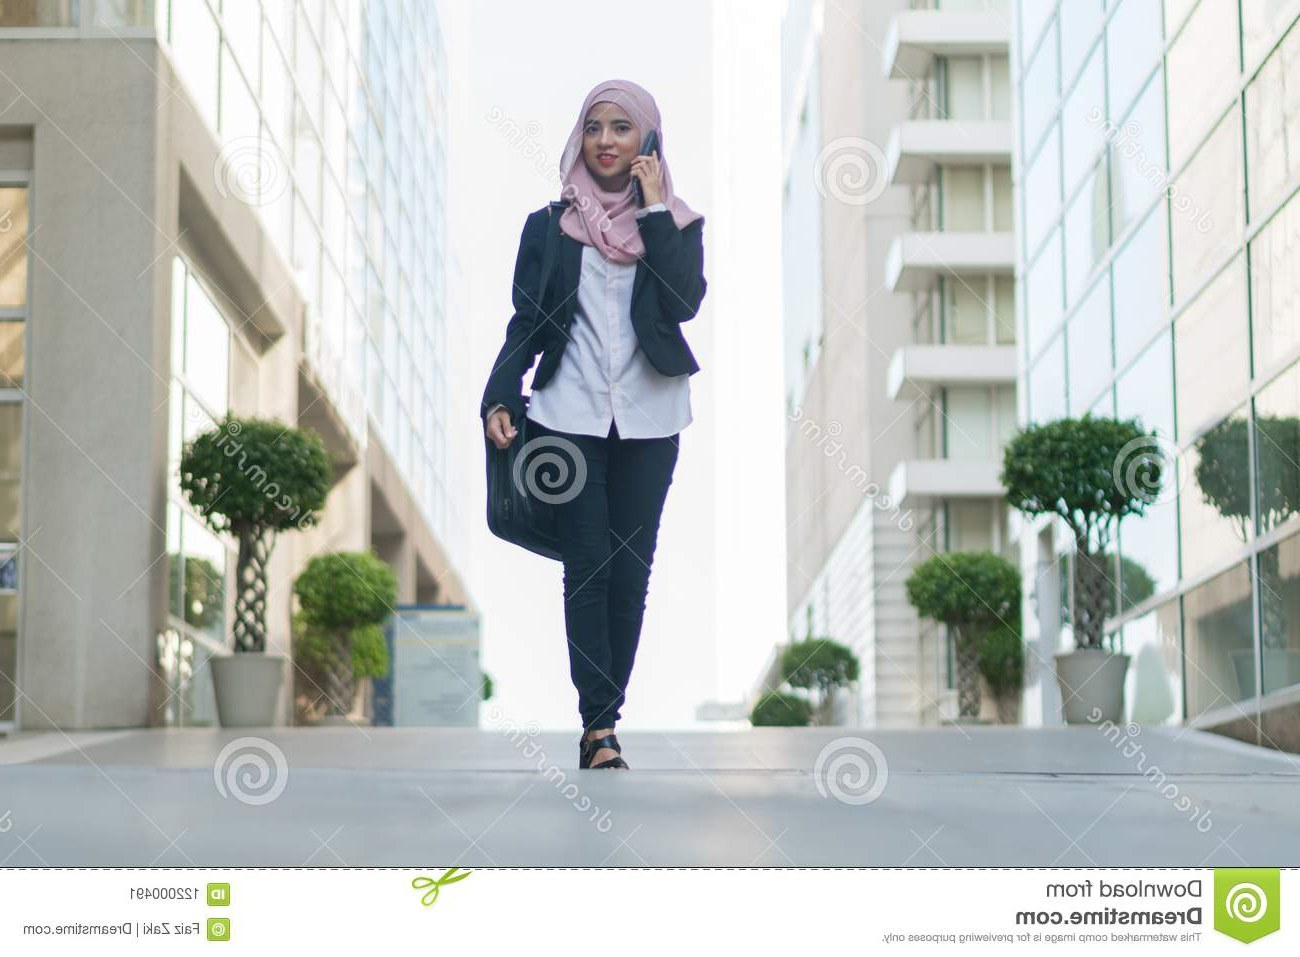 Inspirasi Model Baju Gamis Pernikahan O2d5 Beautiful Malay Girl Holding Mobile Phone Outdoor Stock